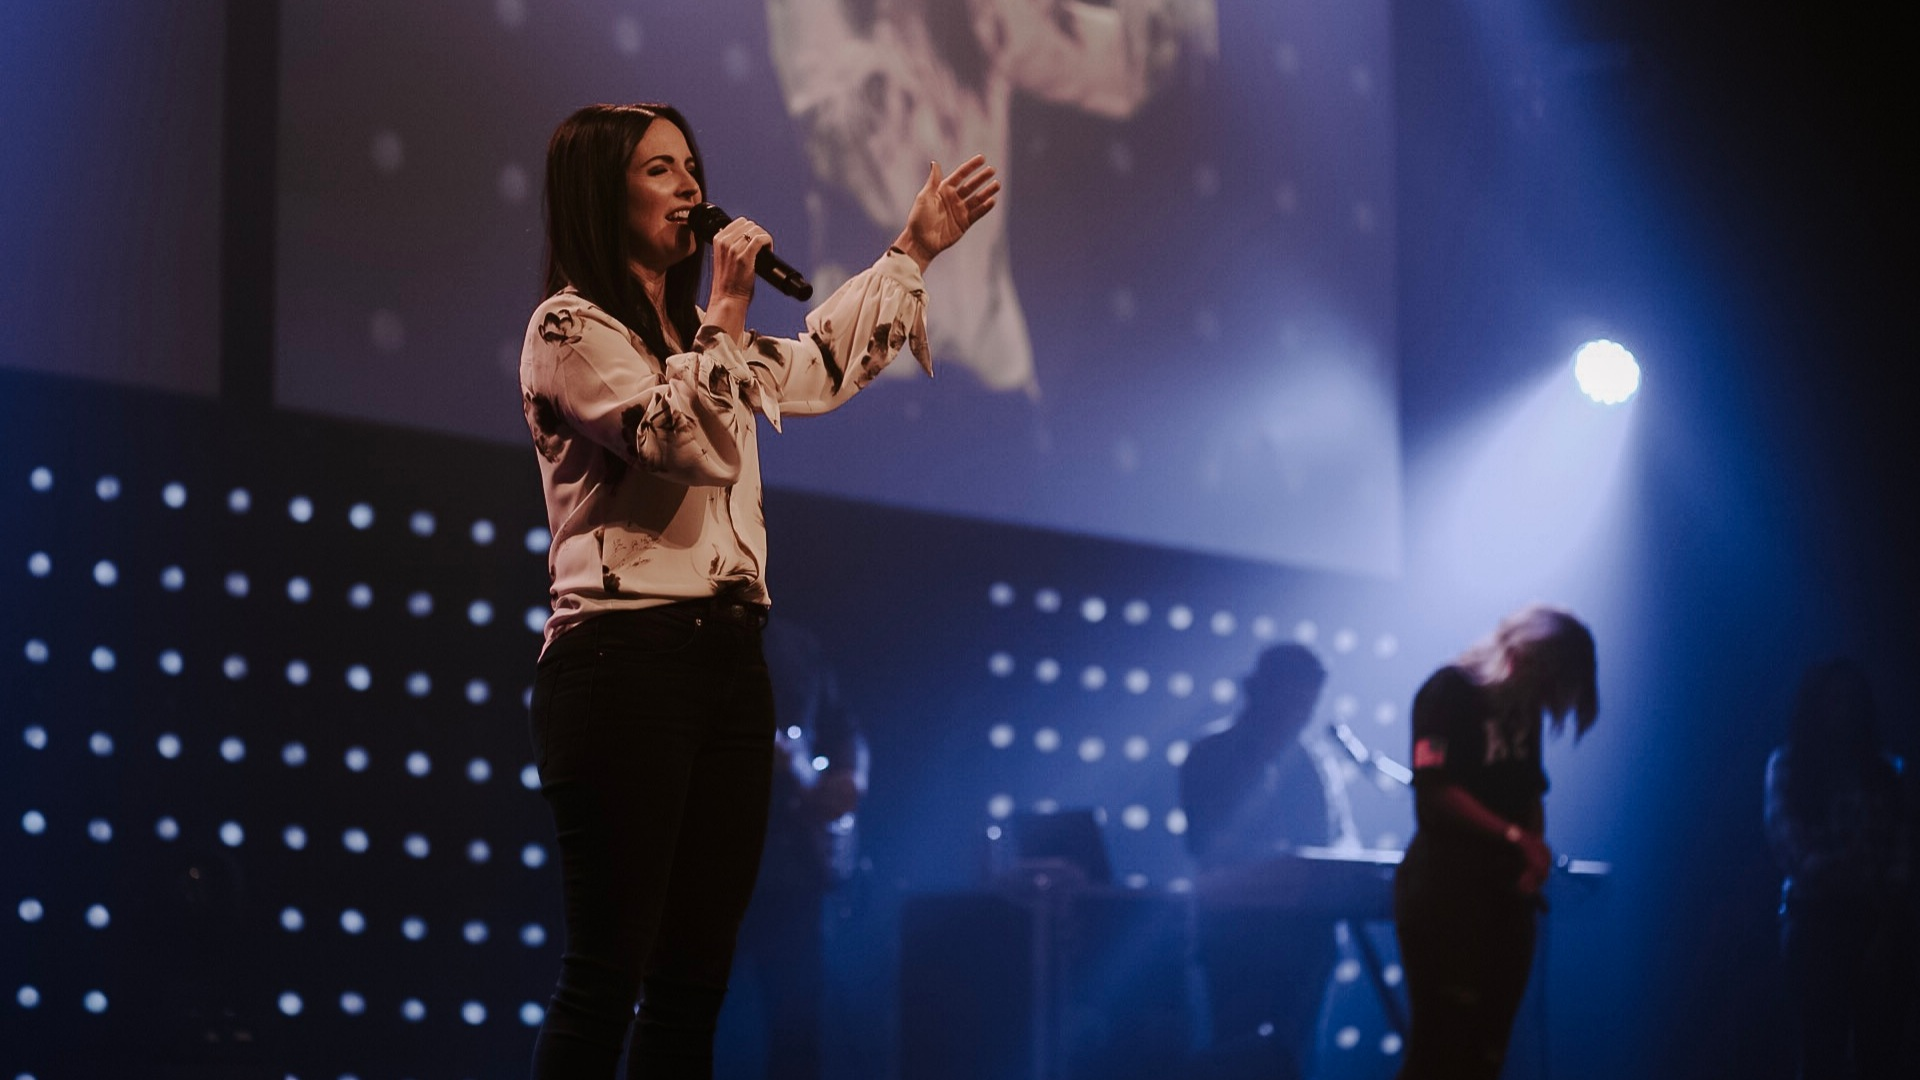 ANGI JEFFCOAT - Pastor Angi Jeffcoat has been a part of the Living Waters family for over 11 years and has a passion for the local Church! Her favorite things about Living Waters Church is the authenticity and hunger for Jesus.